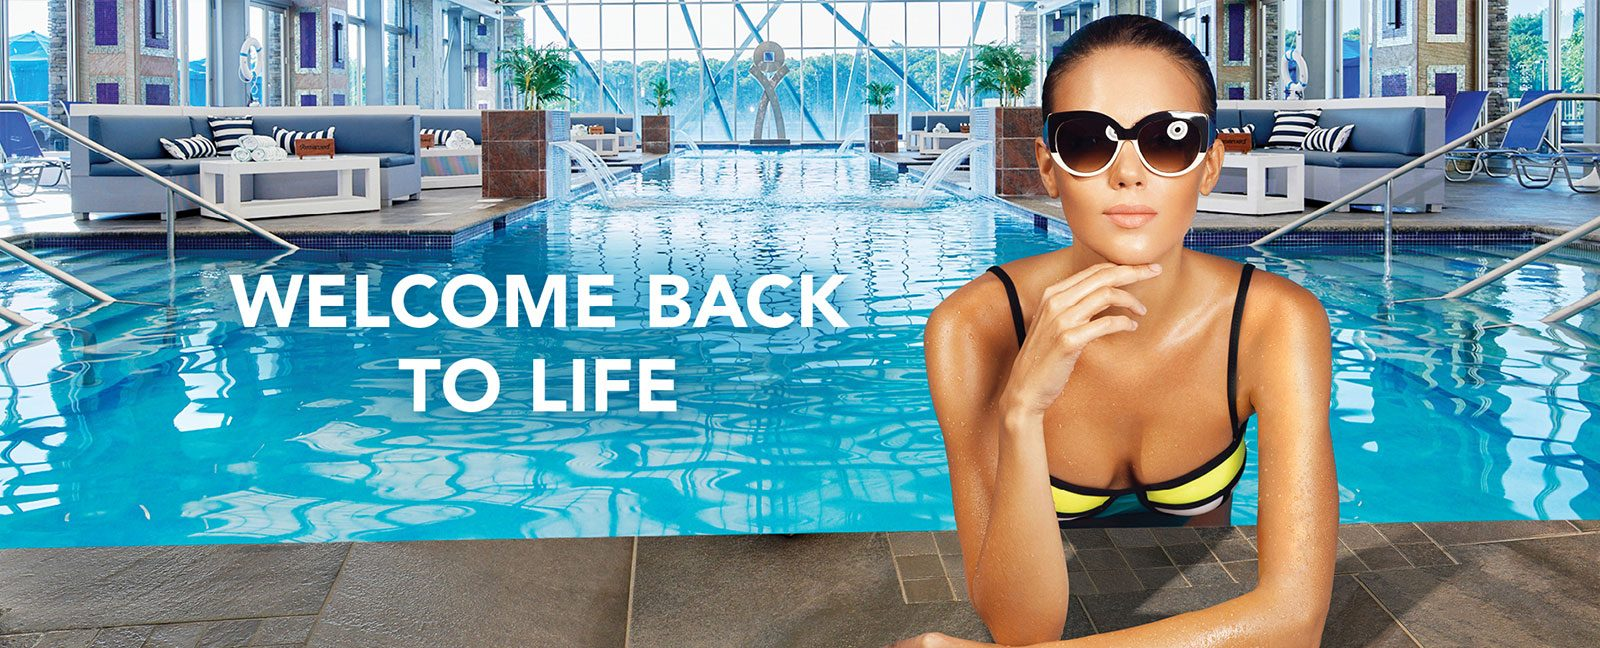 welcome back to life - indoor pool and daybeds